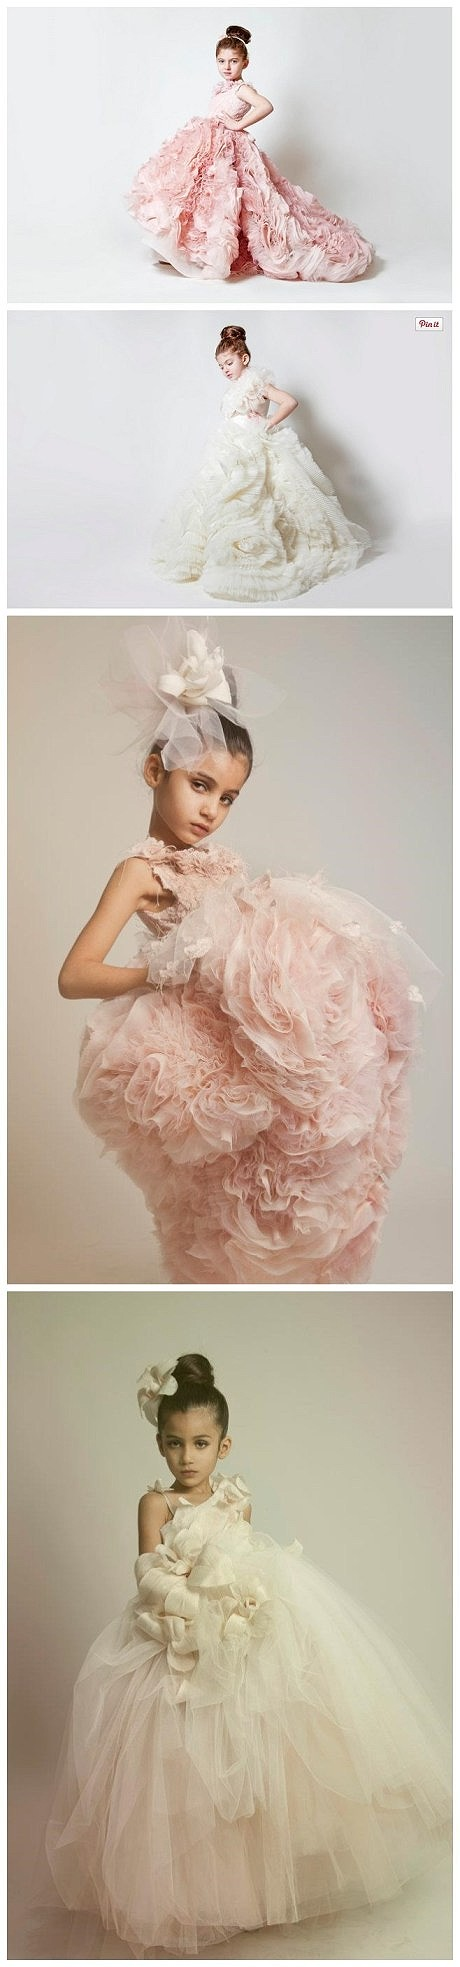 Little flower girl dress costume wedding ~ Meng-dimensional flowers die you will not!